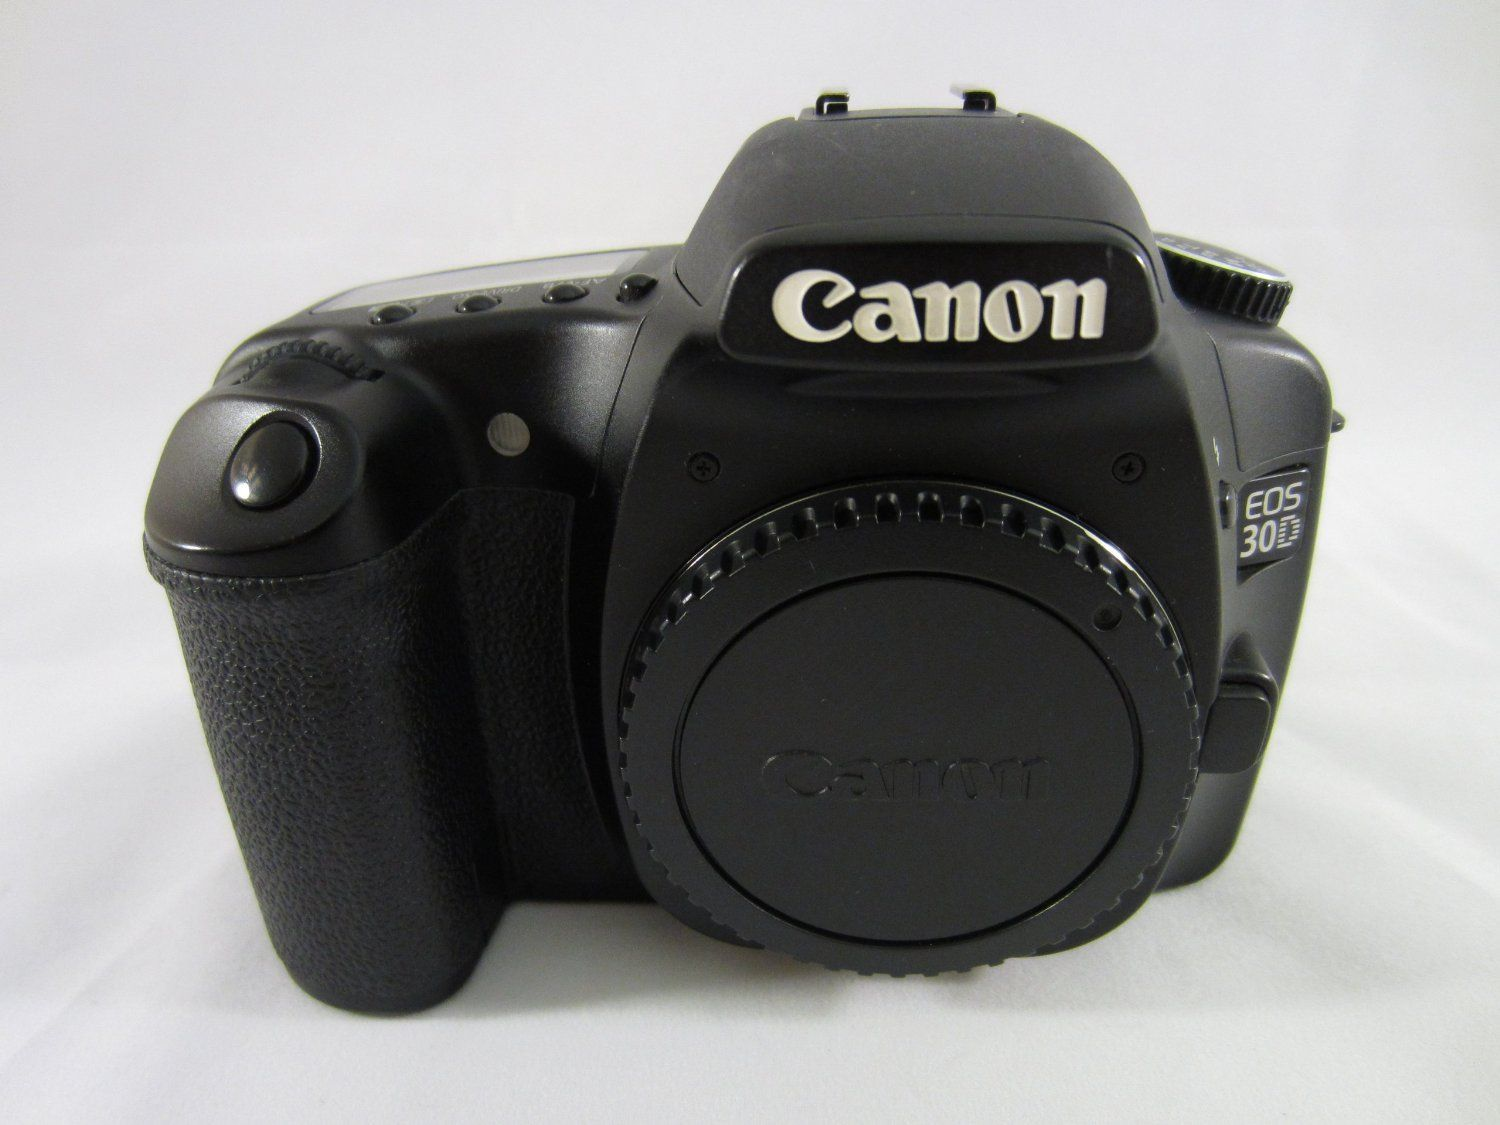 Canon Eos 30d 8 2mp Digital Slr Camera Body Only Digital Slr Camera Canon Eos Eos